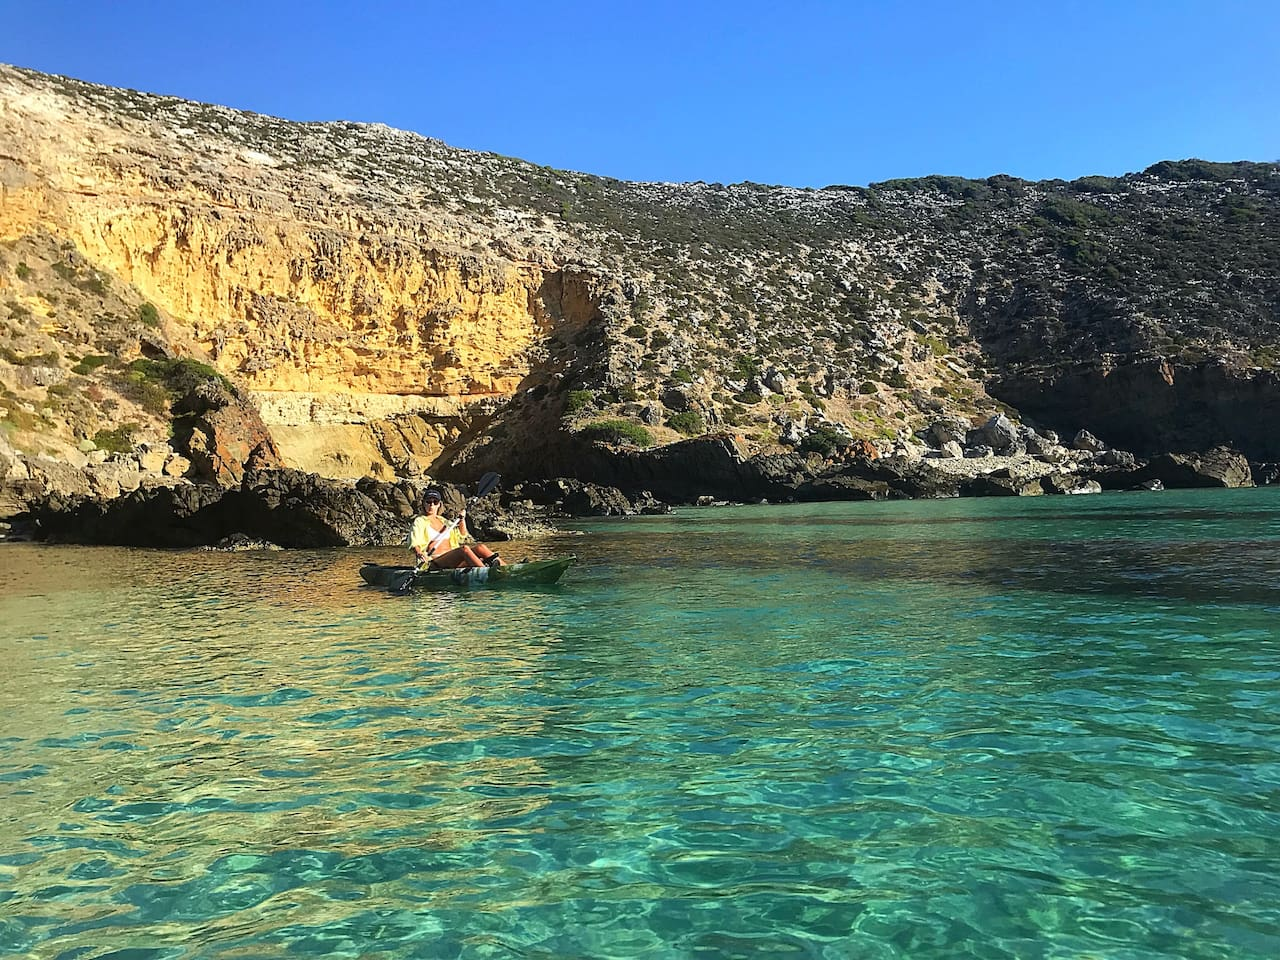 Stunning scenery, swimming, fishing, paddling, snorkeling... all to yourself.